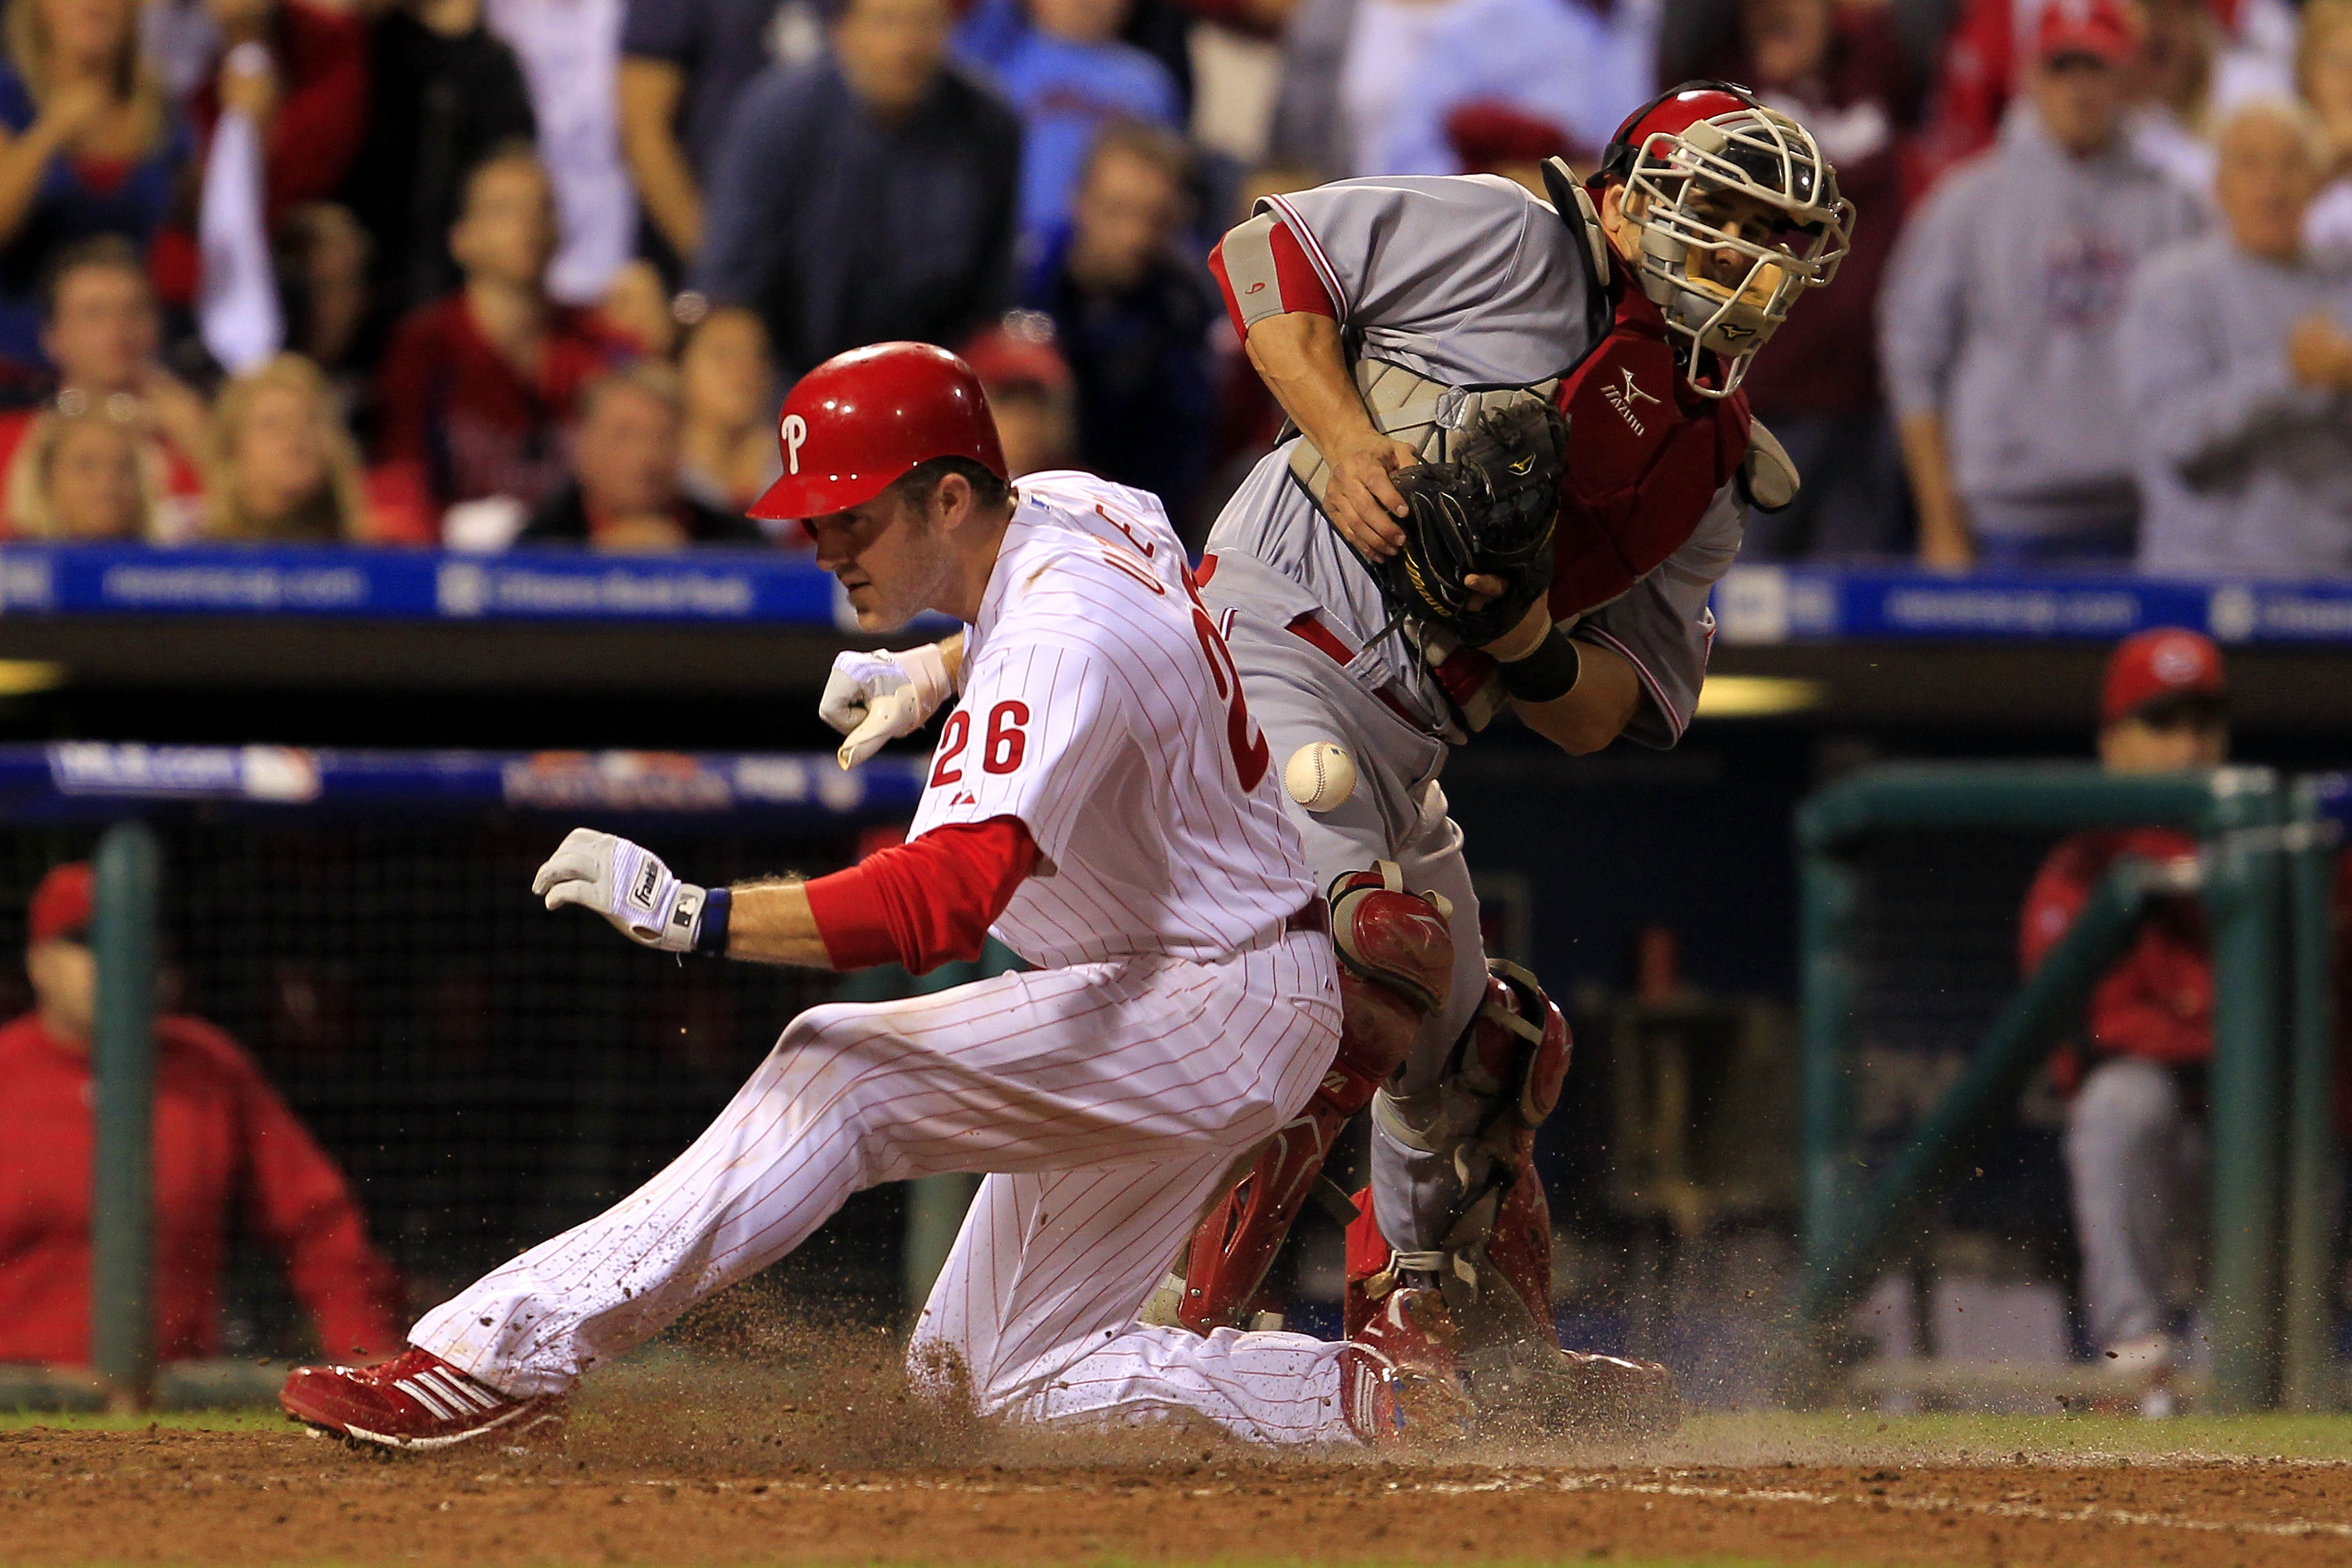 PHILADELPHIA - OCTOBER 08: Chase Utley #28 of the Philadelphia Phillies crosses the plate to score in front of Ryan Hanigan #29 of the Cincinnati Reds in game 2 of NLDS at Citizens Bank Park on October 8, 2010 in Philadelphia, Pennsylvania. The Phillies d